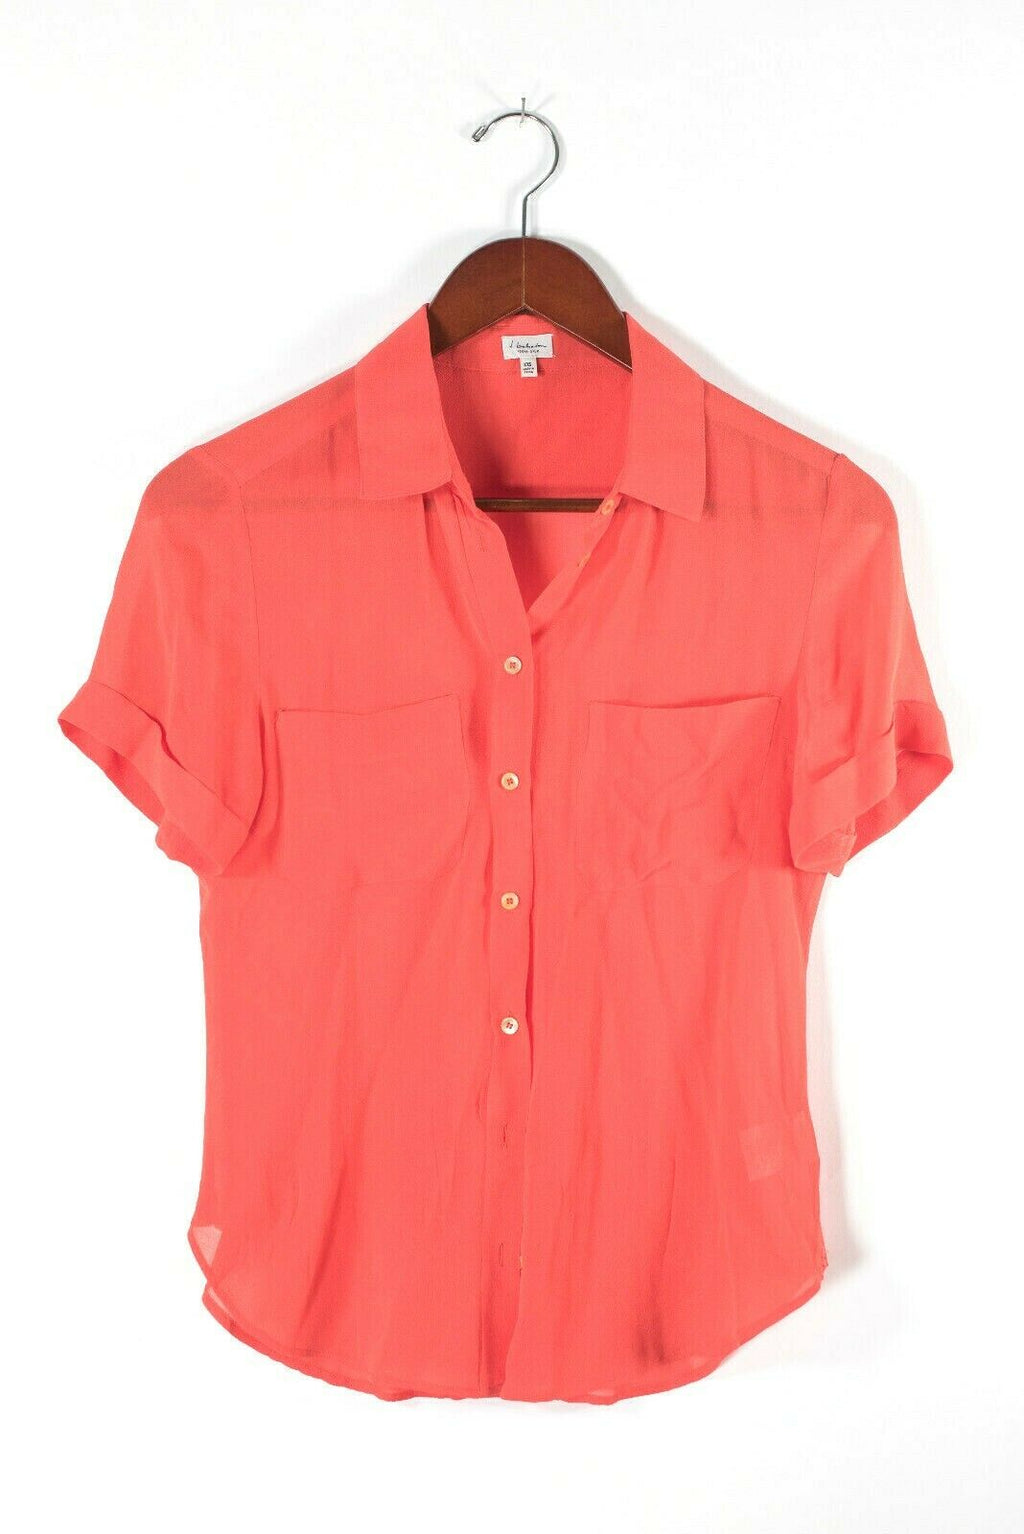 Aritzia T. Babaton Womens XXS Red Blouse Short Sleeve Shirt Button Down Silk Top